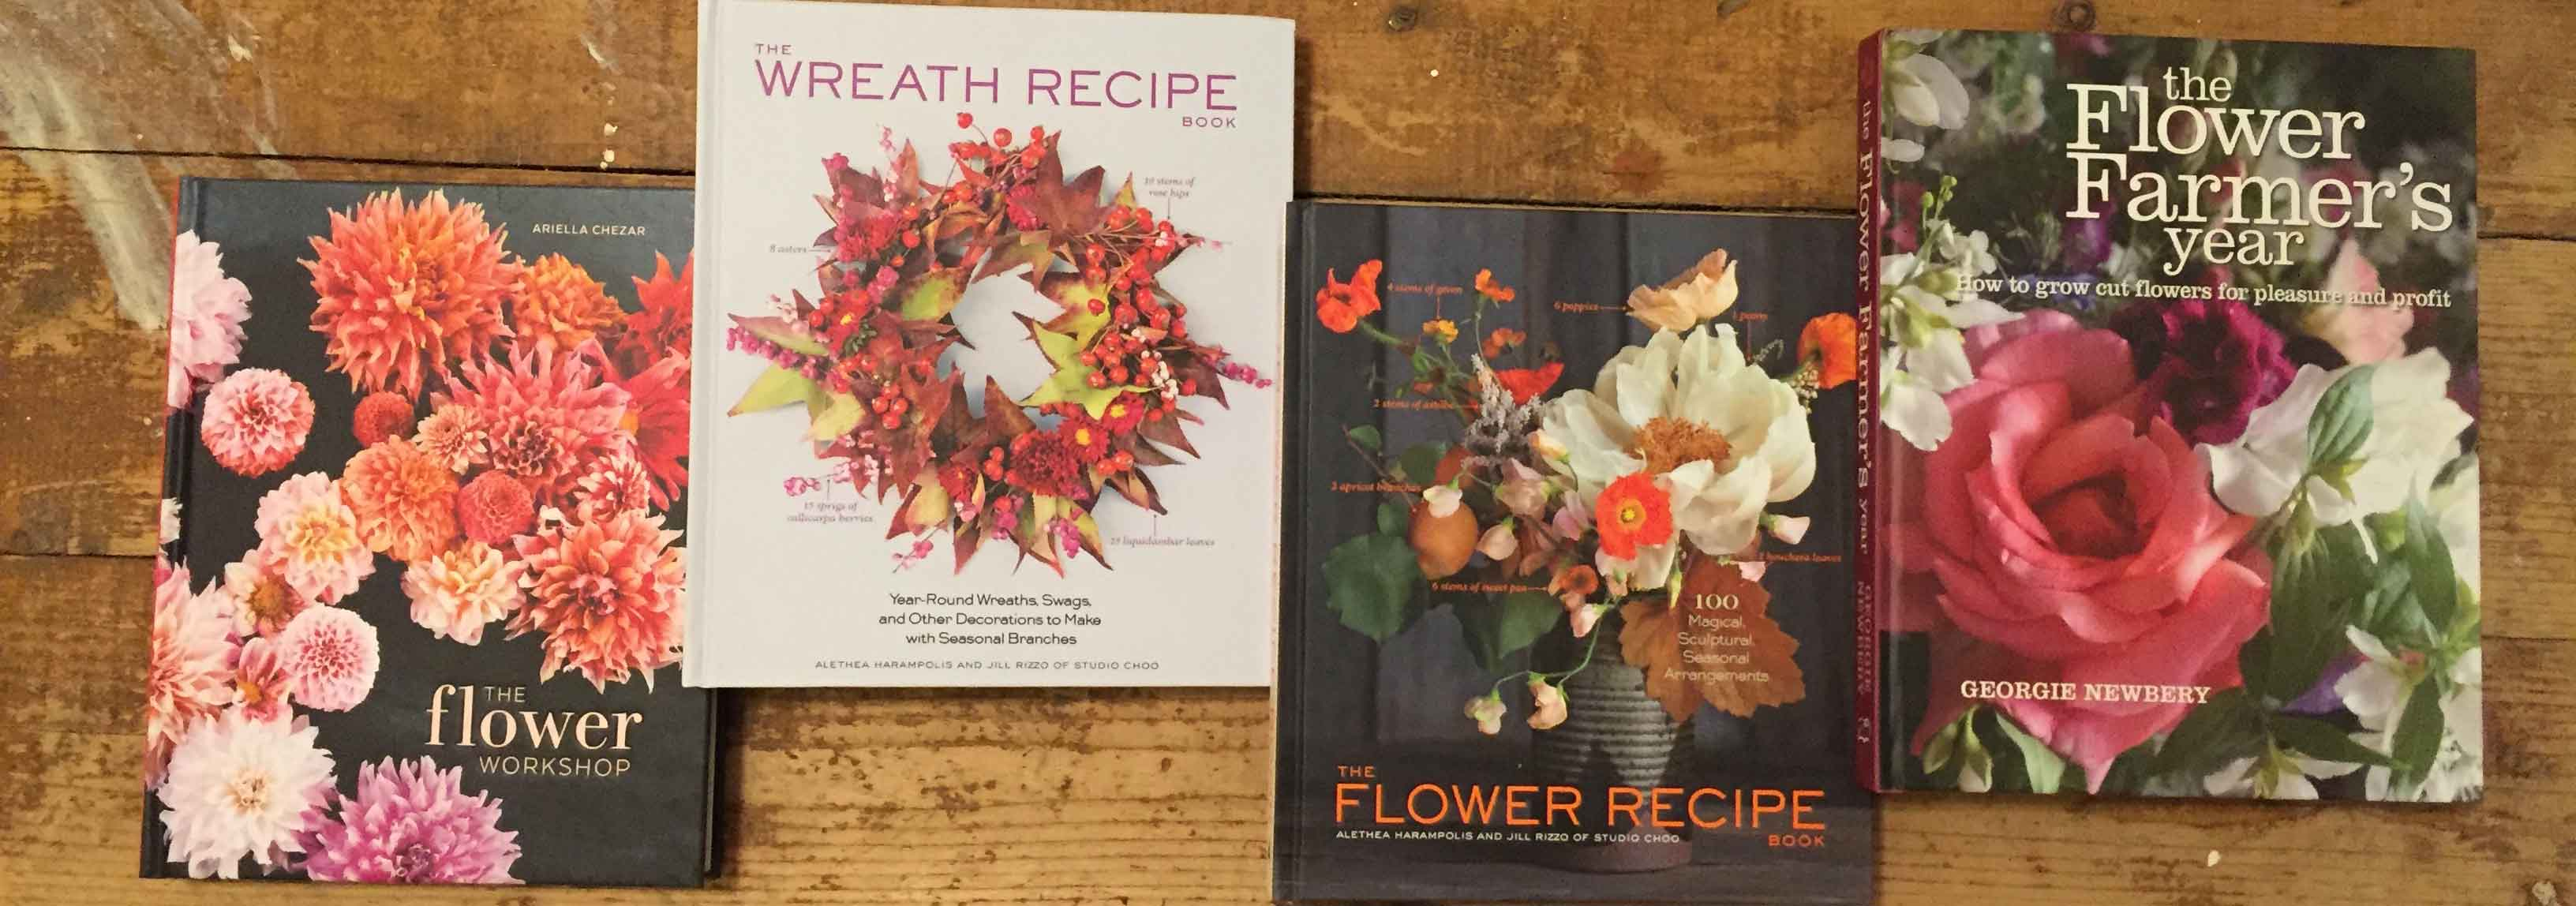 New Flower Farming Books